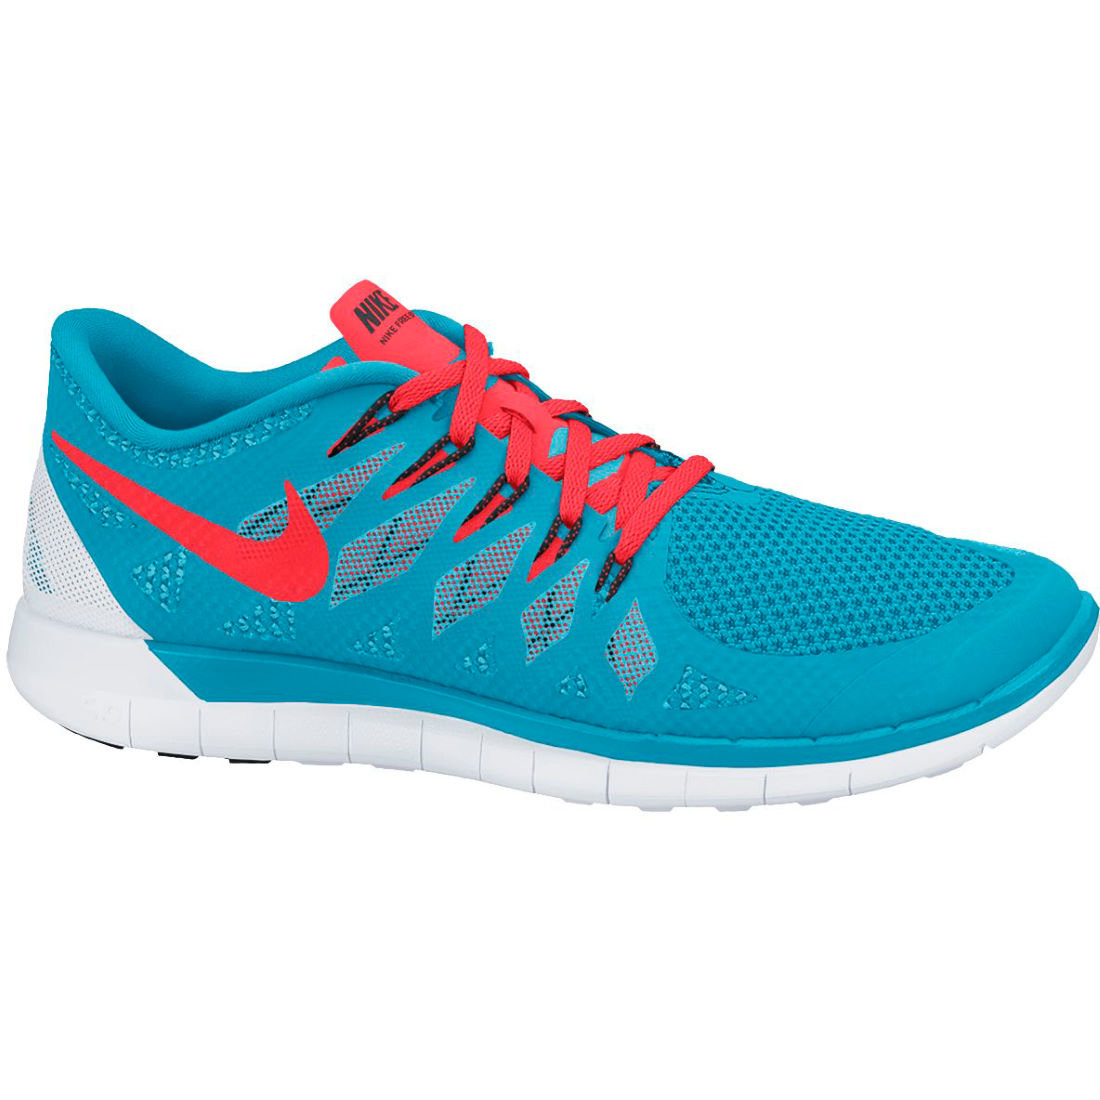 Free 5.0 Running Shoes